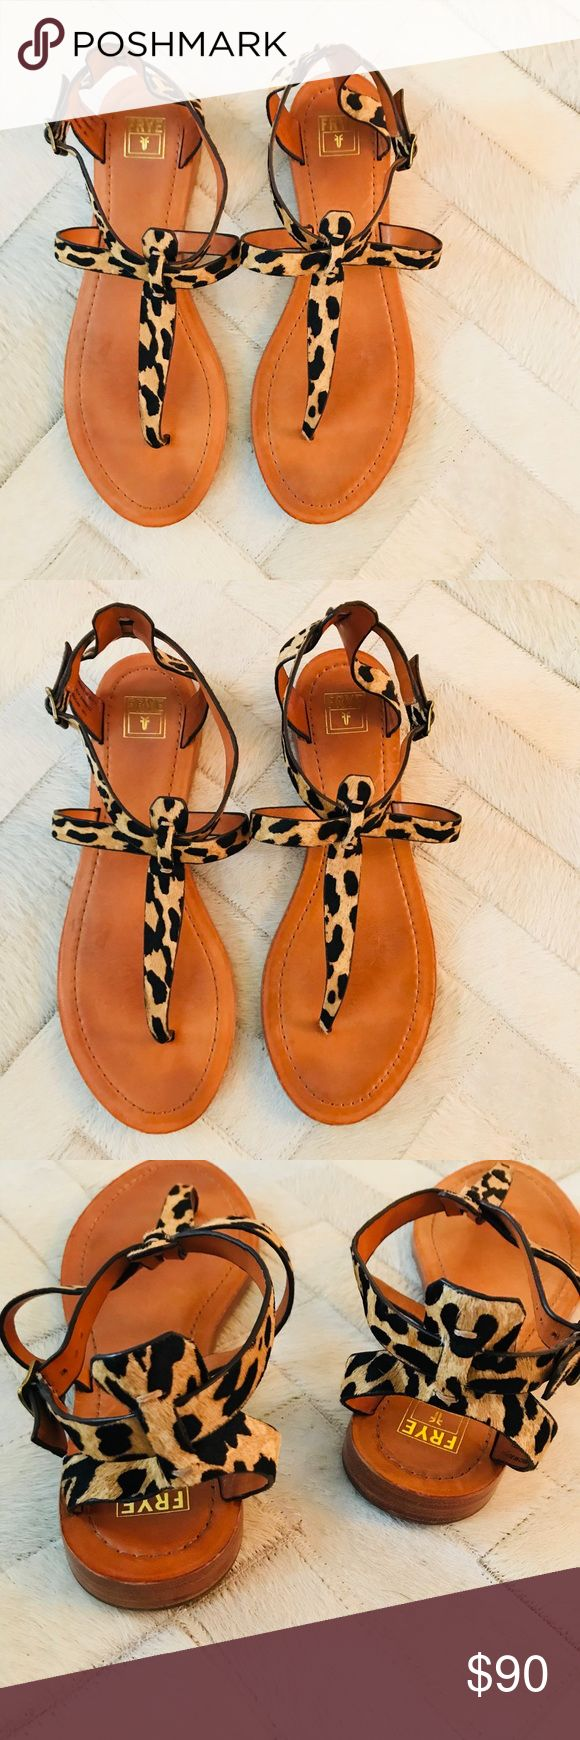 "Frye ""Rachel T"" Flat Leopard Sandal 11 LIKE NEW Worn gently only a couple times. Size 11, excellent condition. No signs of wear except light markings on bottom of soles. Smoke free home. Frye Shoes Sandals"